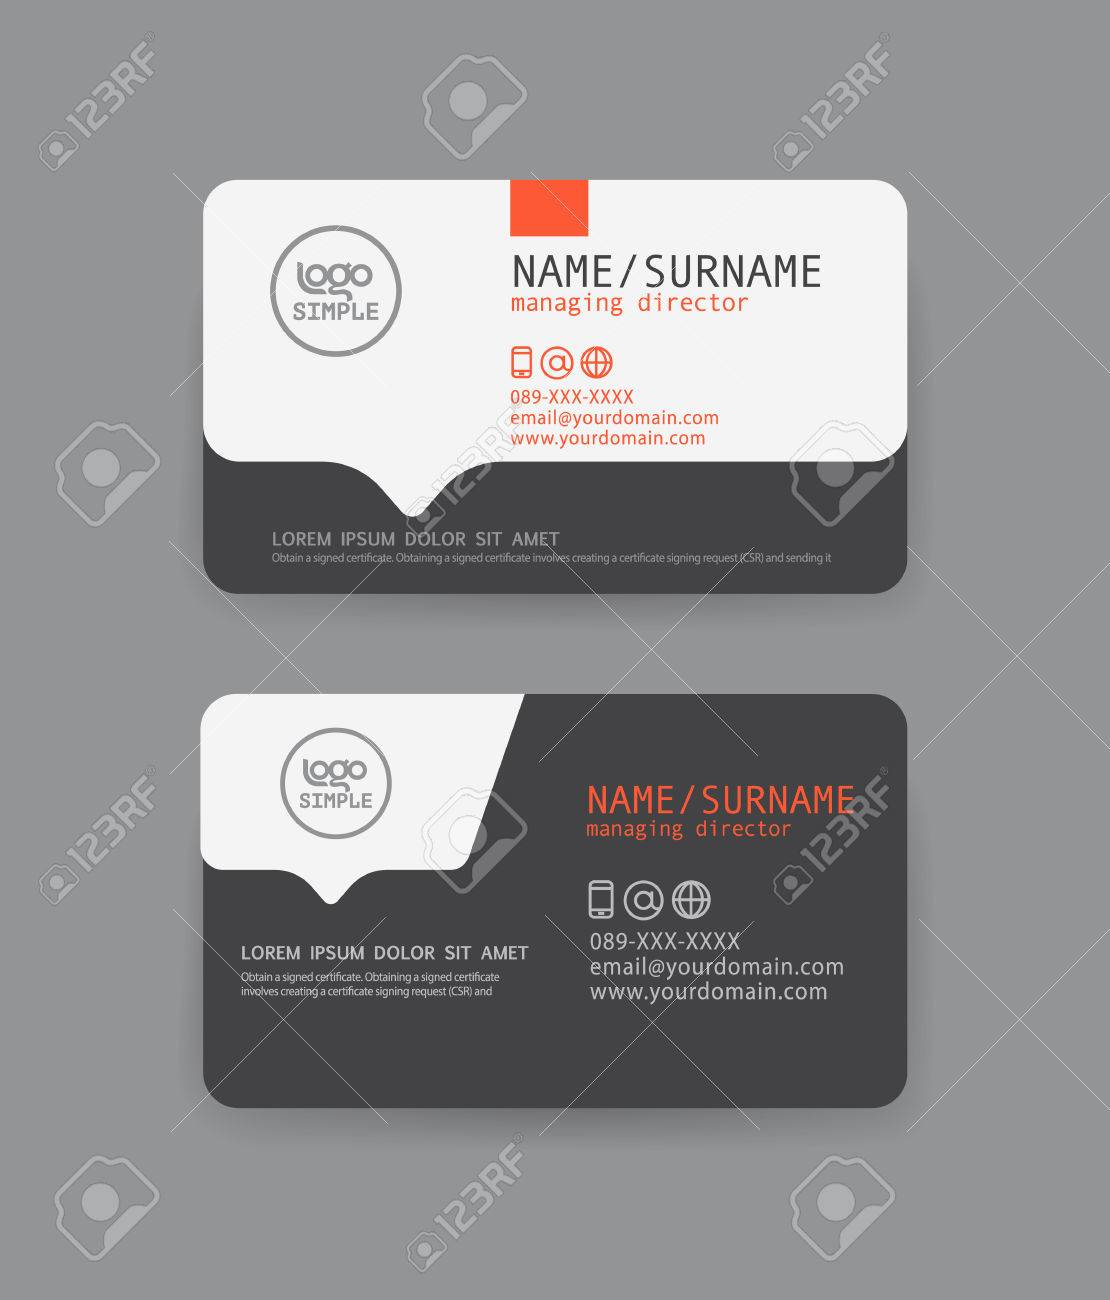 Vector modern clean business card template flat design royalty free vector modern clean business card template flat design stock vector 40949767 colourmoves Choice Image